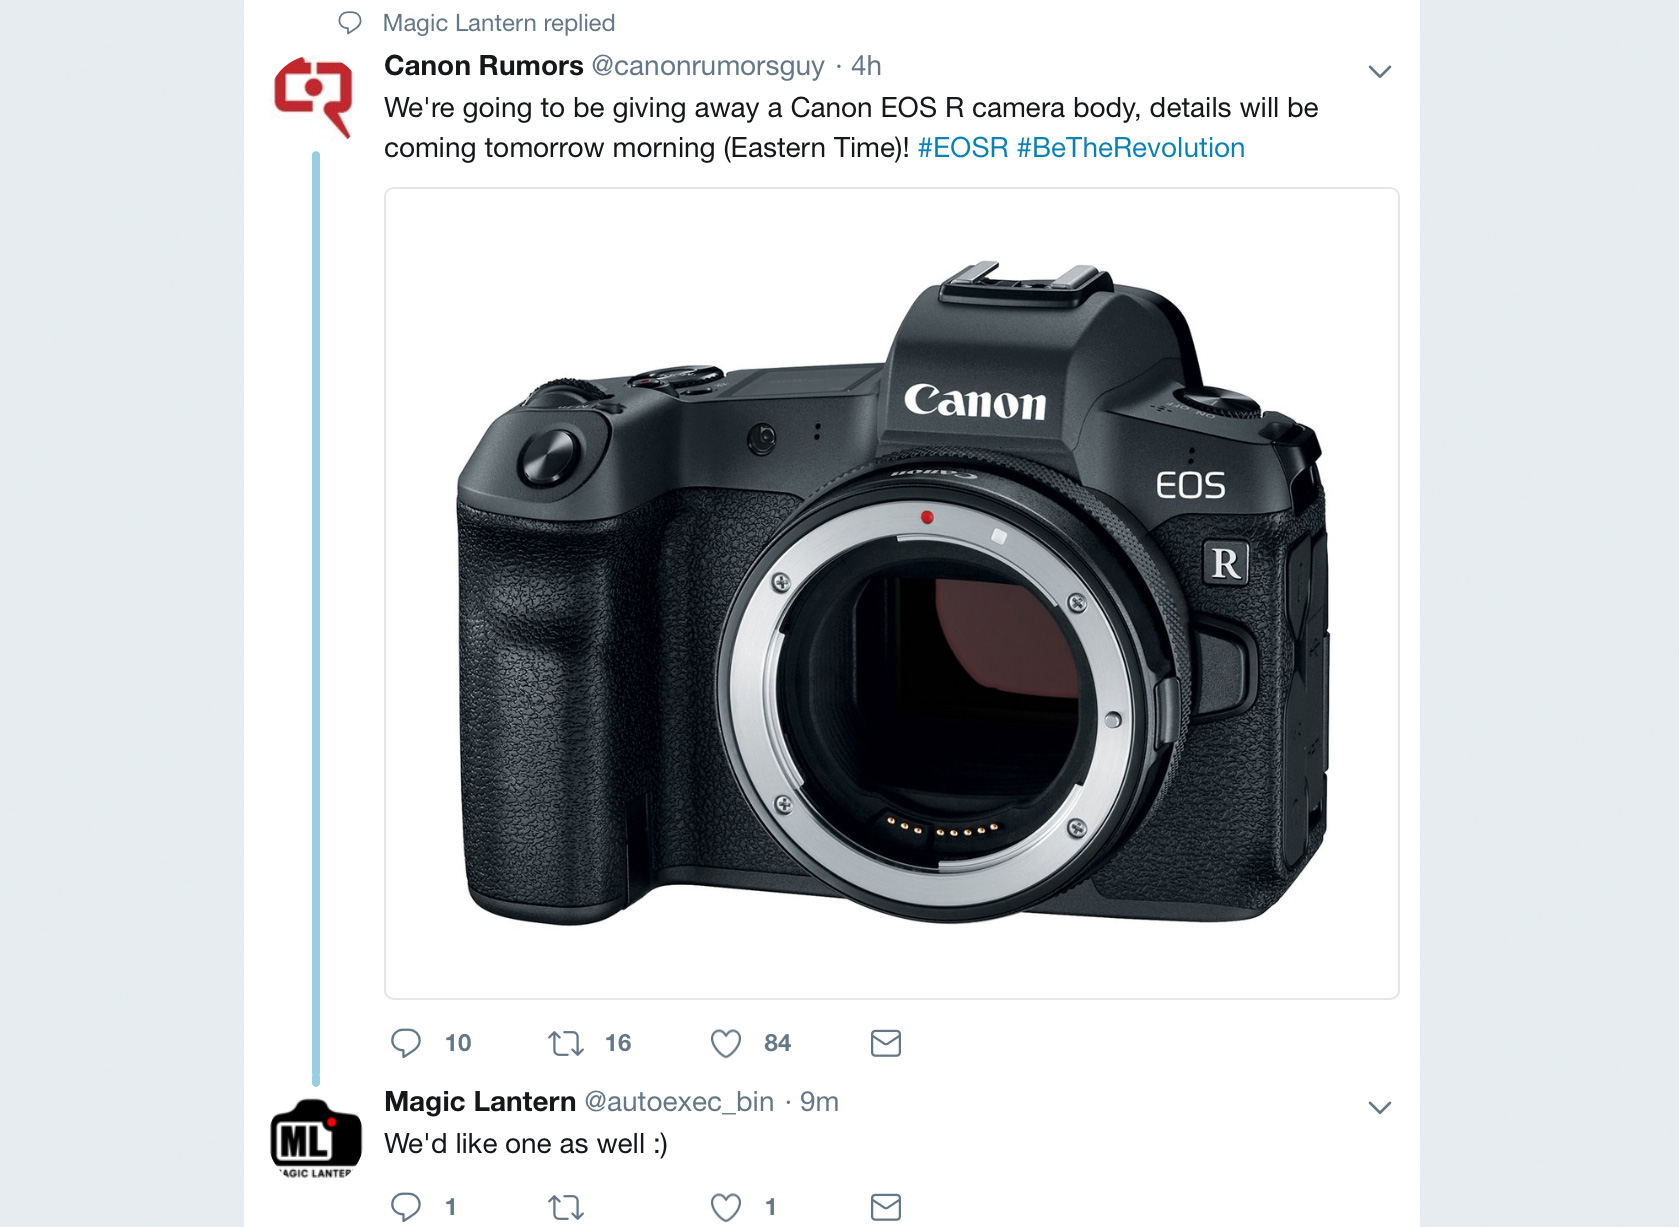 Apparently Canon Rumors is giving away an EOS R - Now let's